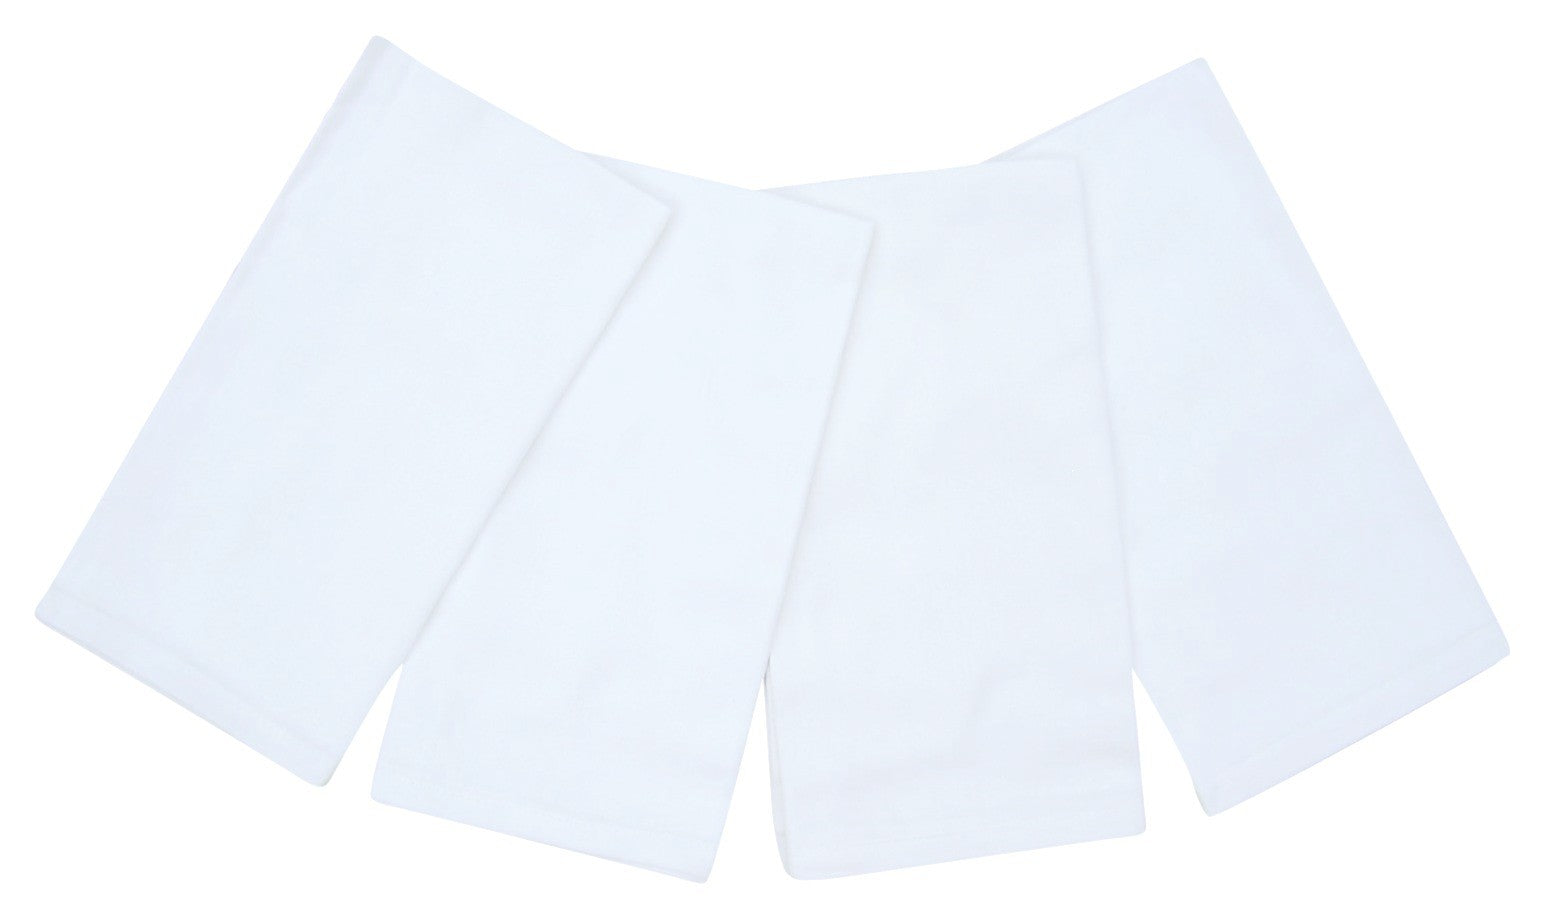 "100% Cotton Napkins 20"" x 20"" Set of 4 Bright White"